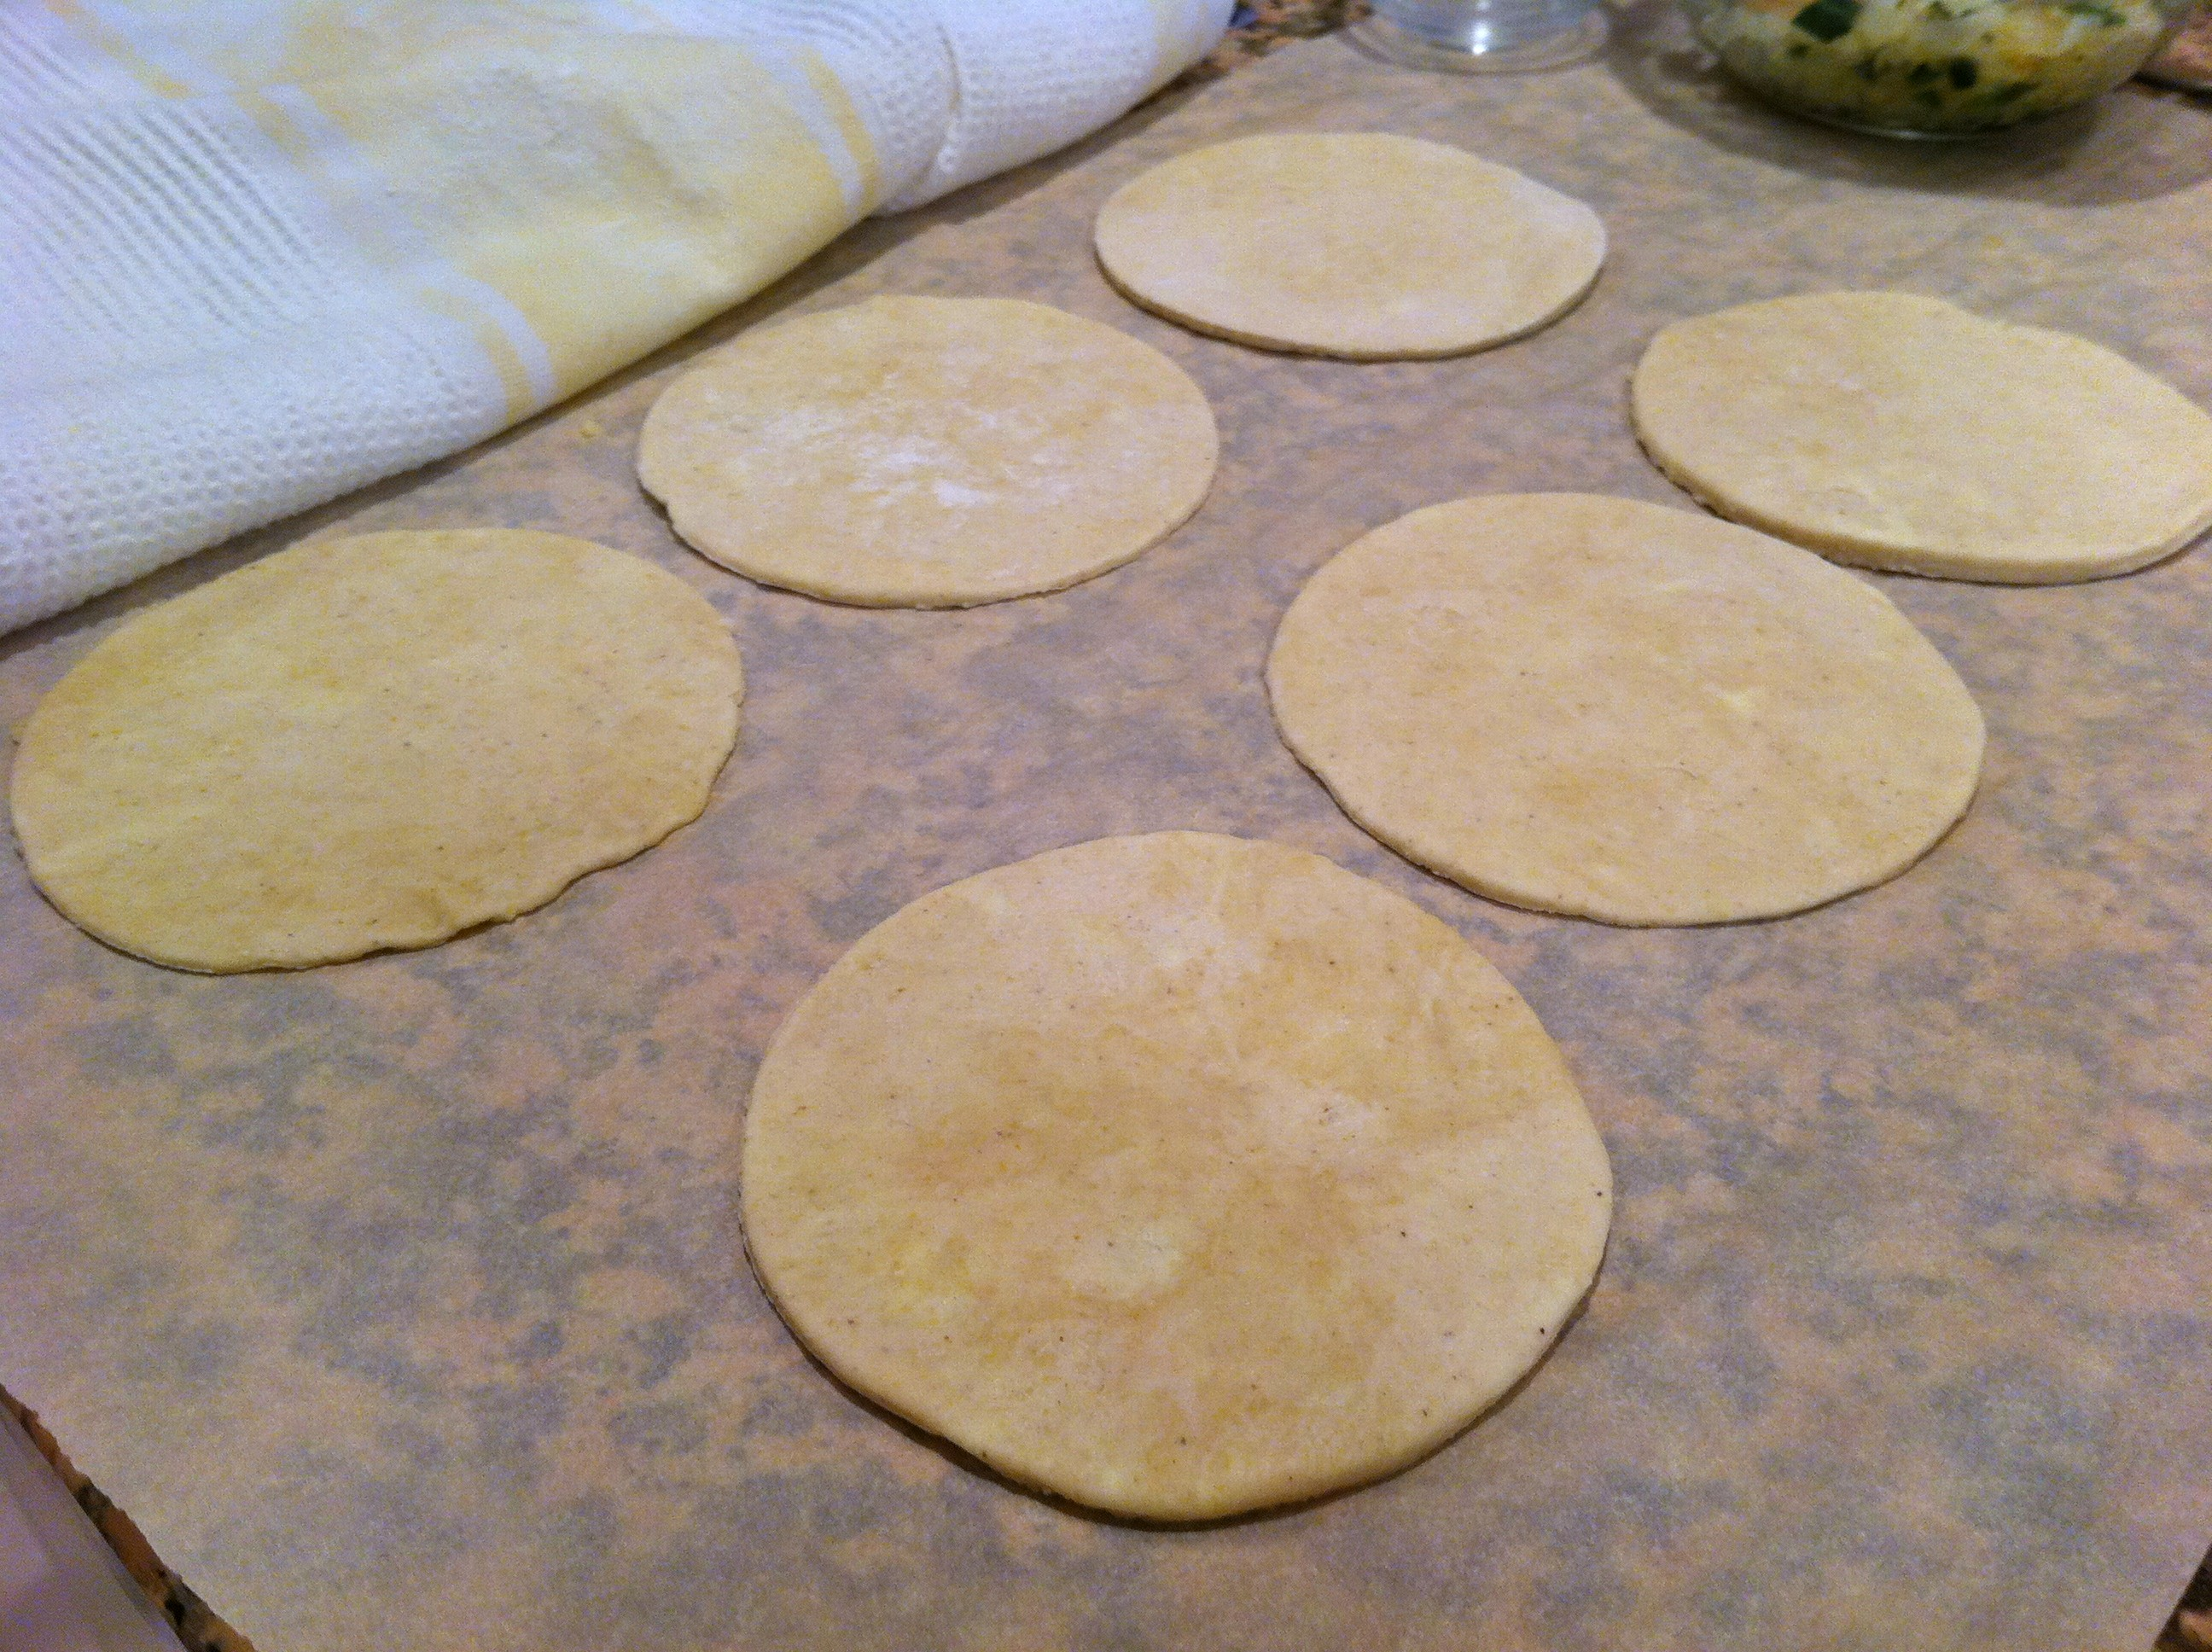 ... empanada dough preparation ilocano style empanada dough empanada dough